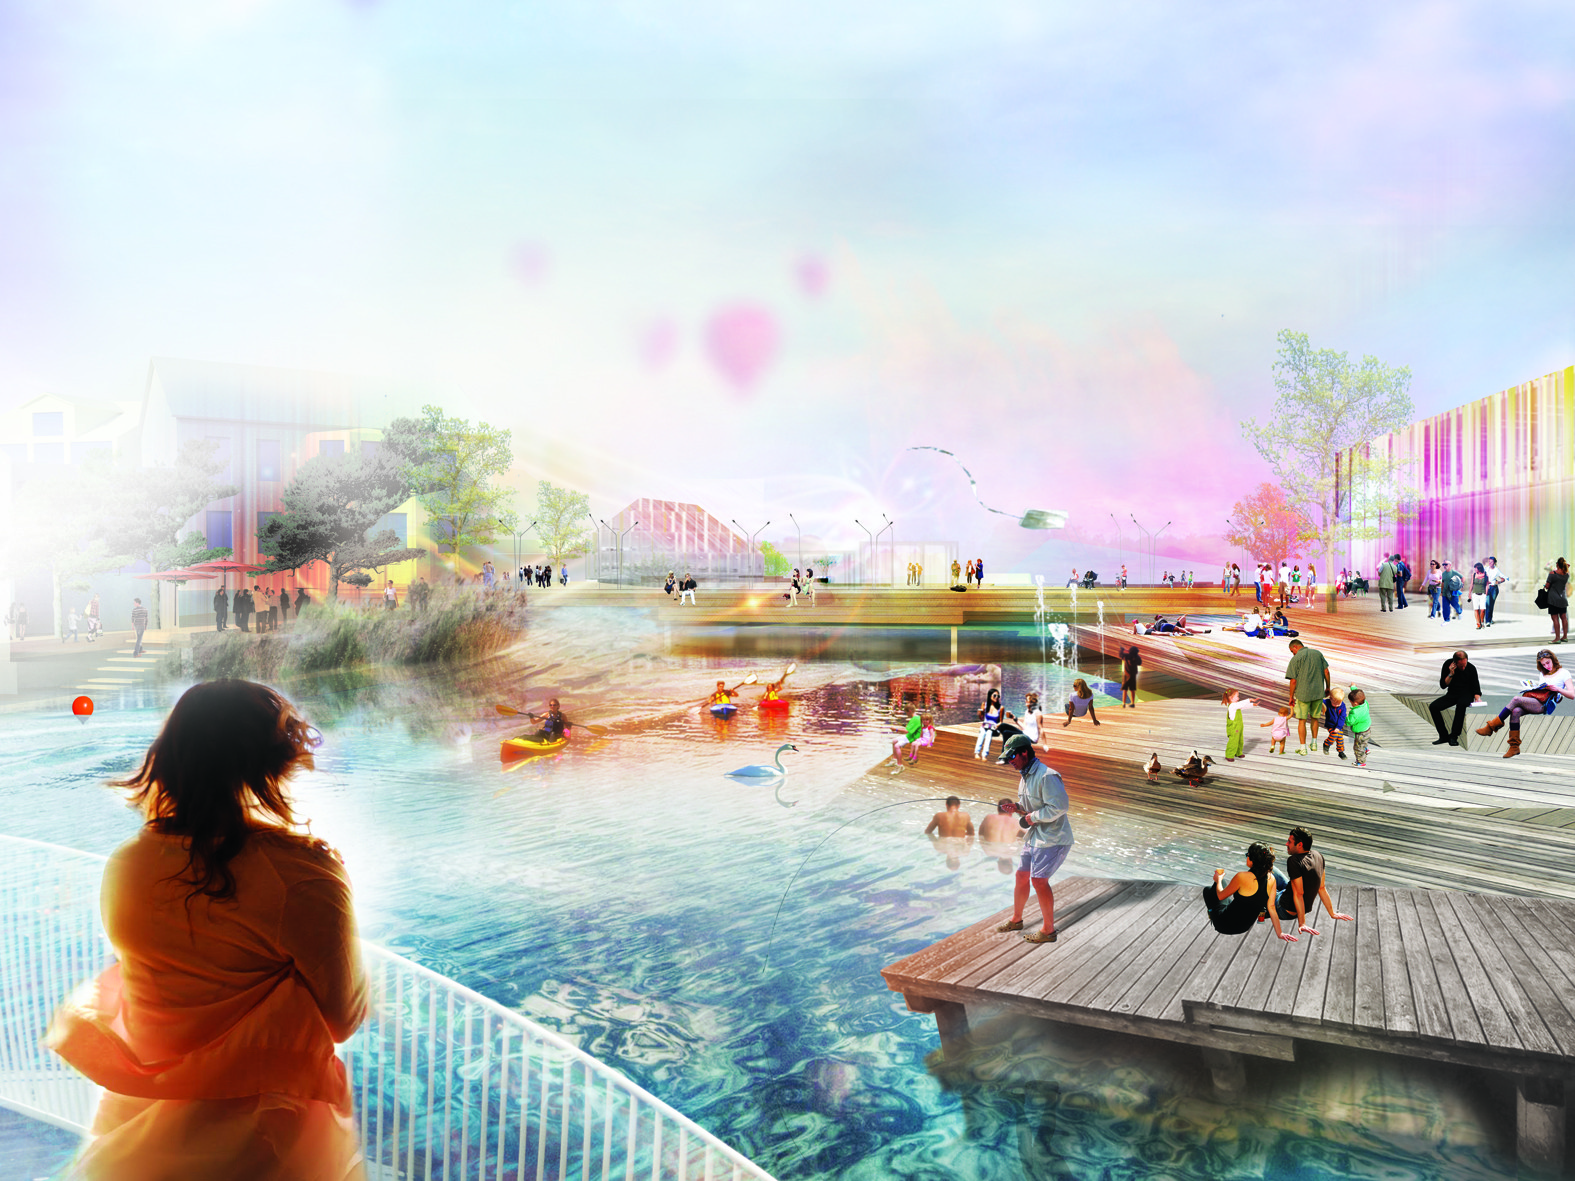 Future Floda Winning Proposal / Mandaworks + Hosper Sweden, Courtesy of Mandaworks + Hosper Sweden